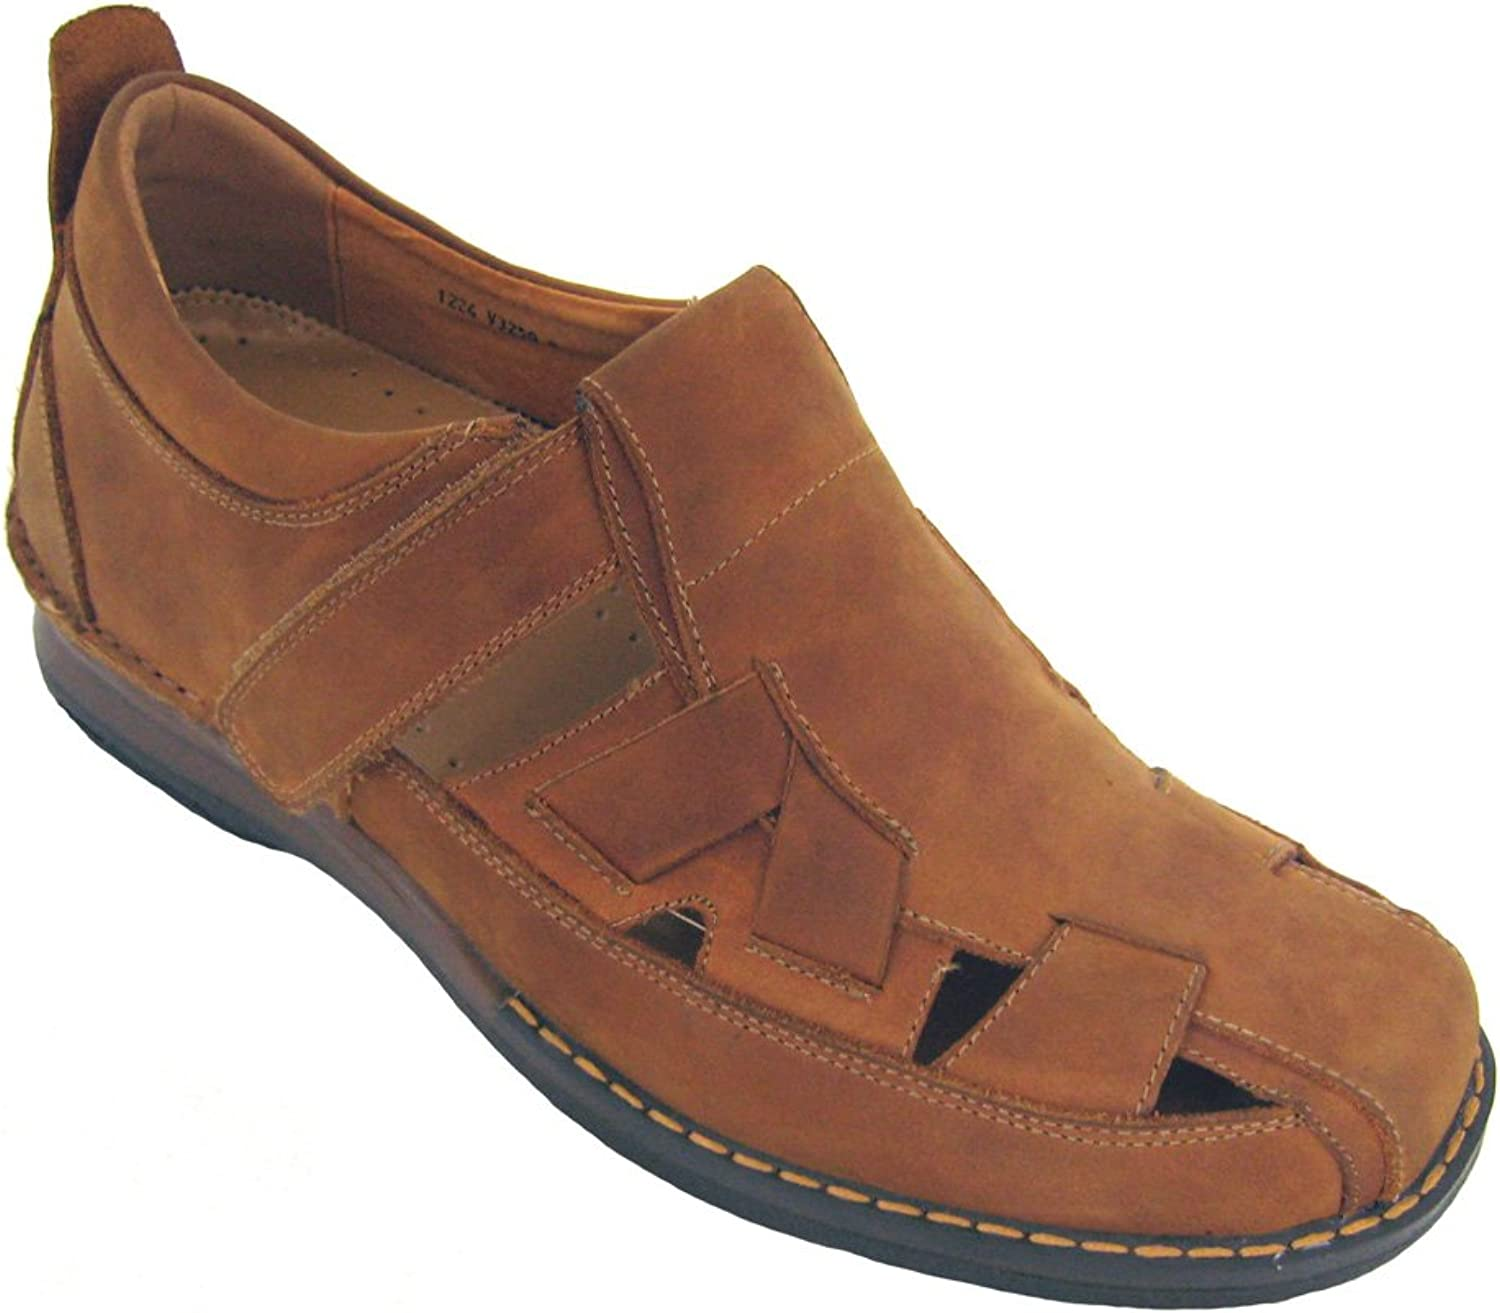 CALTO - V3250-2.8 Inches Taller - Height Increasing Elevator shoes (Brown Fisherman Sandals)